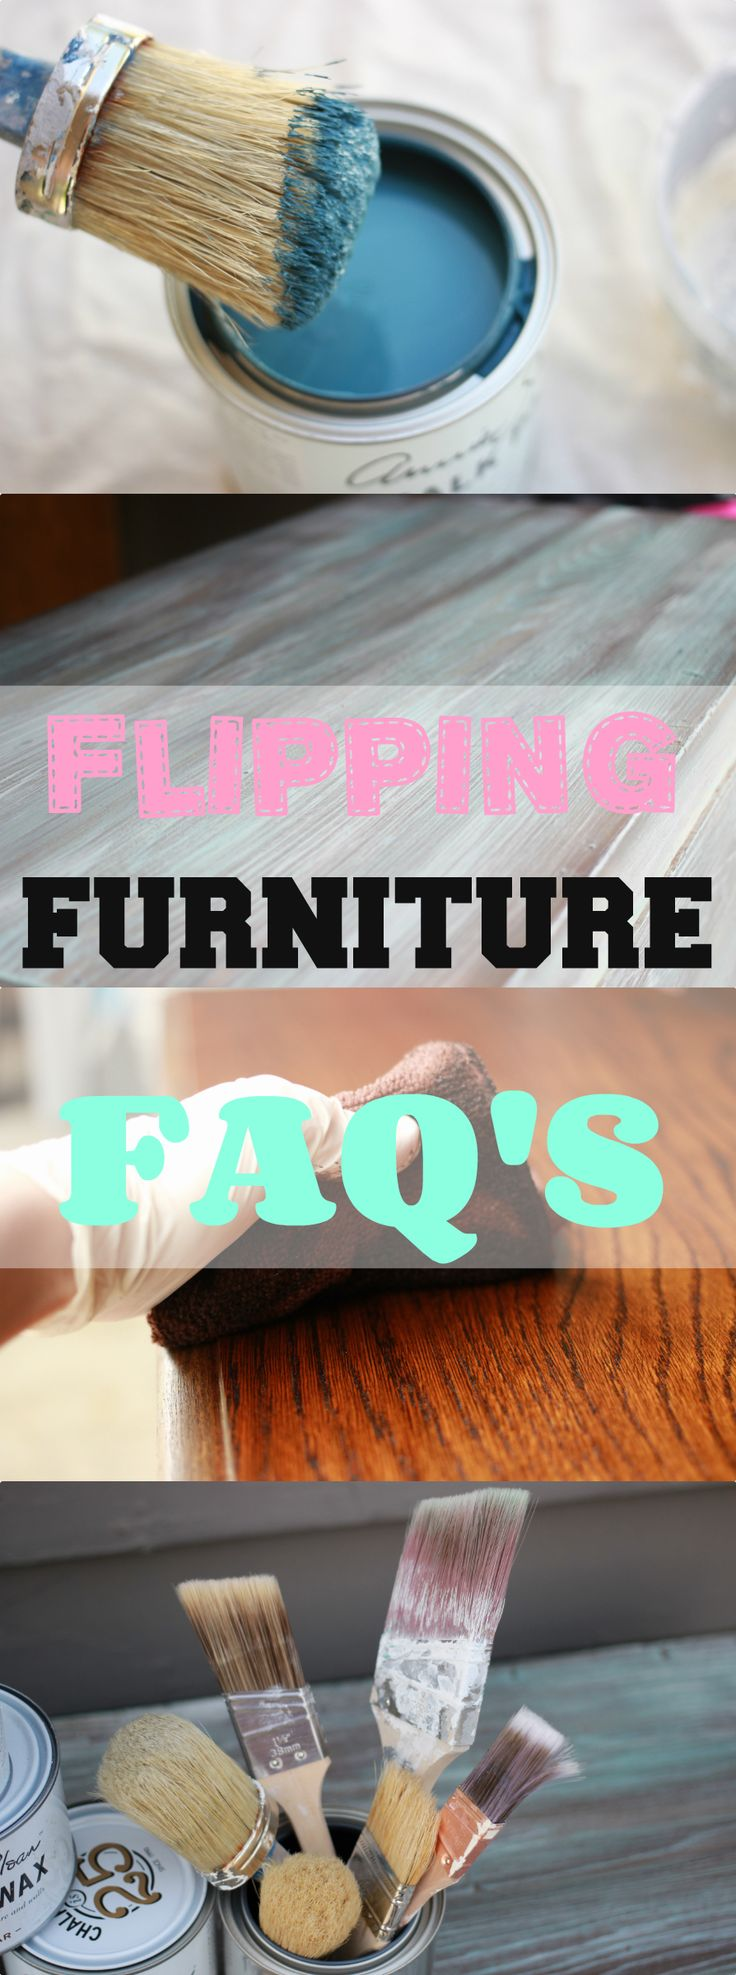 How to start flipping houses with bad credit - What You Need To Know About Flipping Furniture For Profit